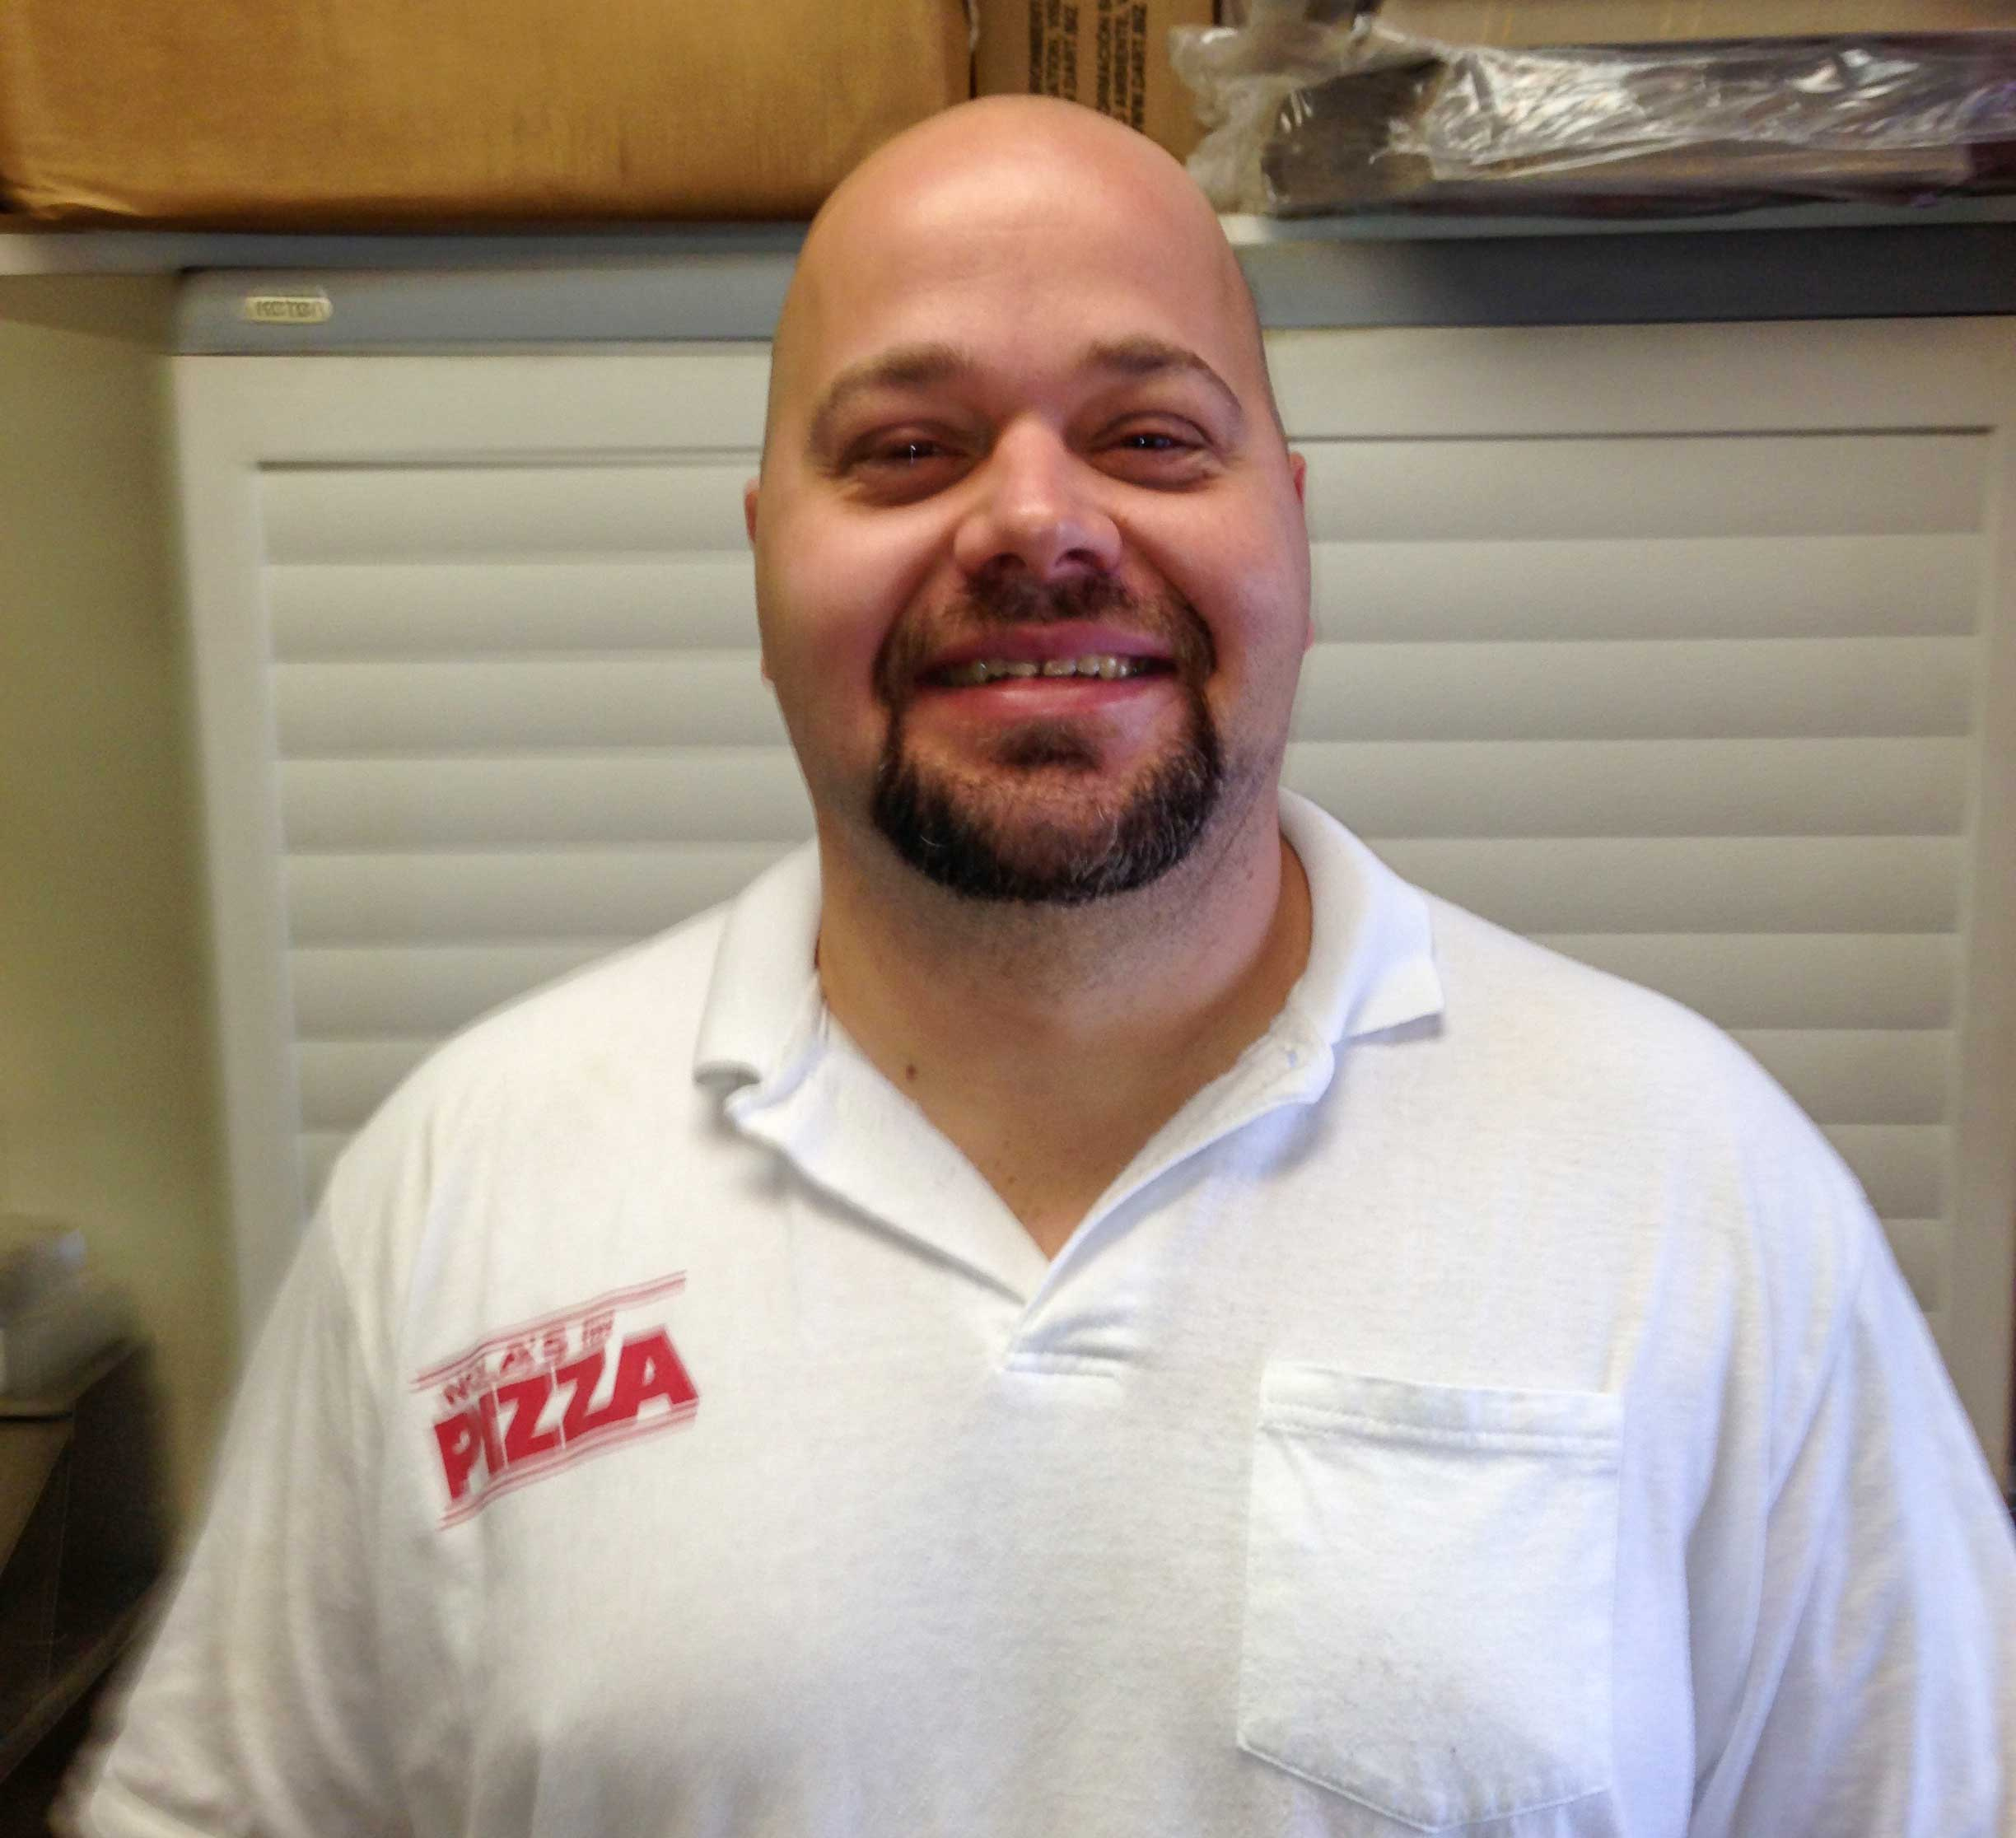 James has worked at Nola's on and off since 2000.